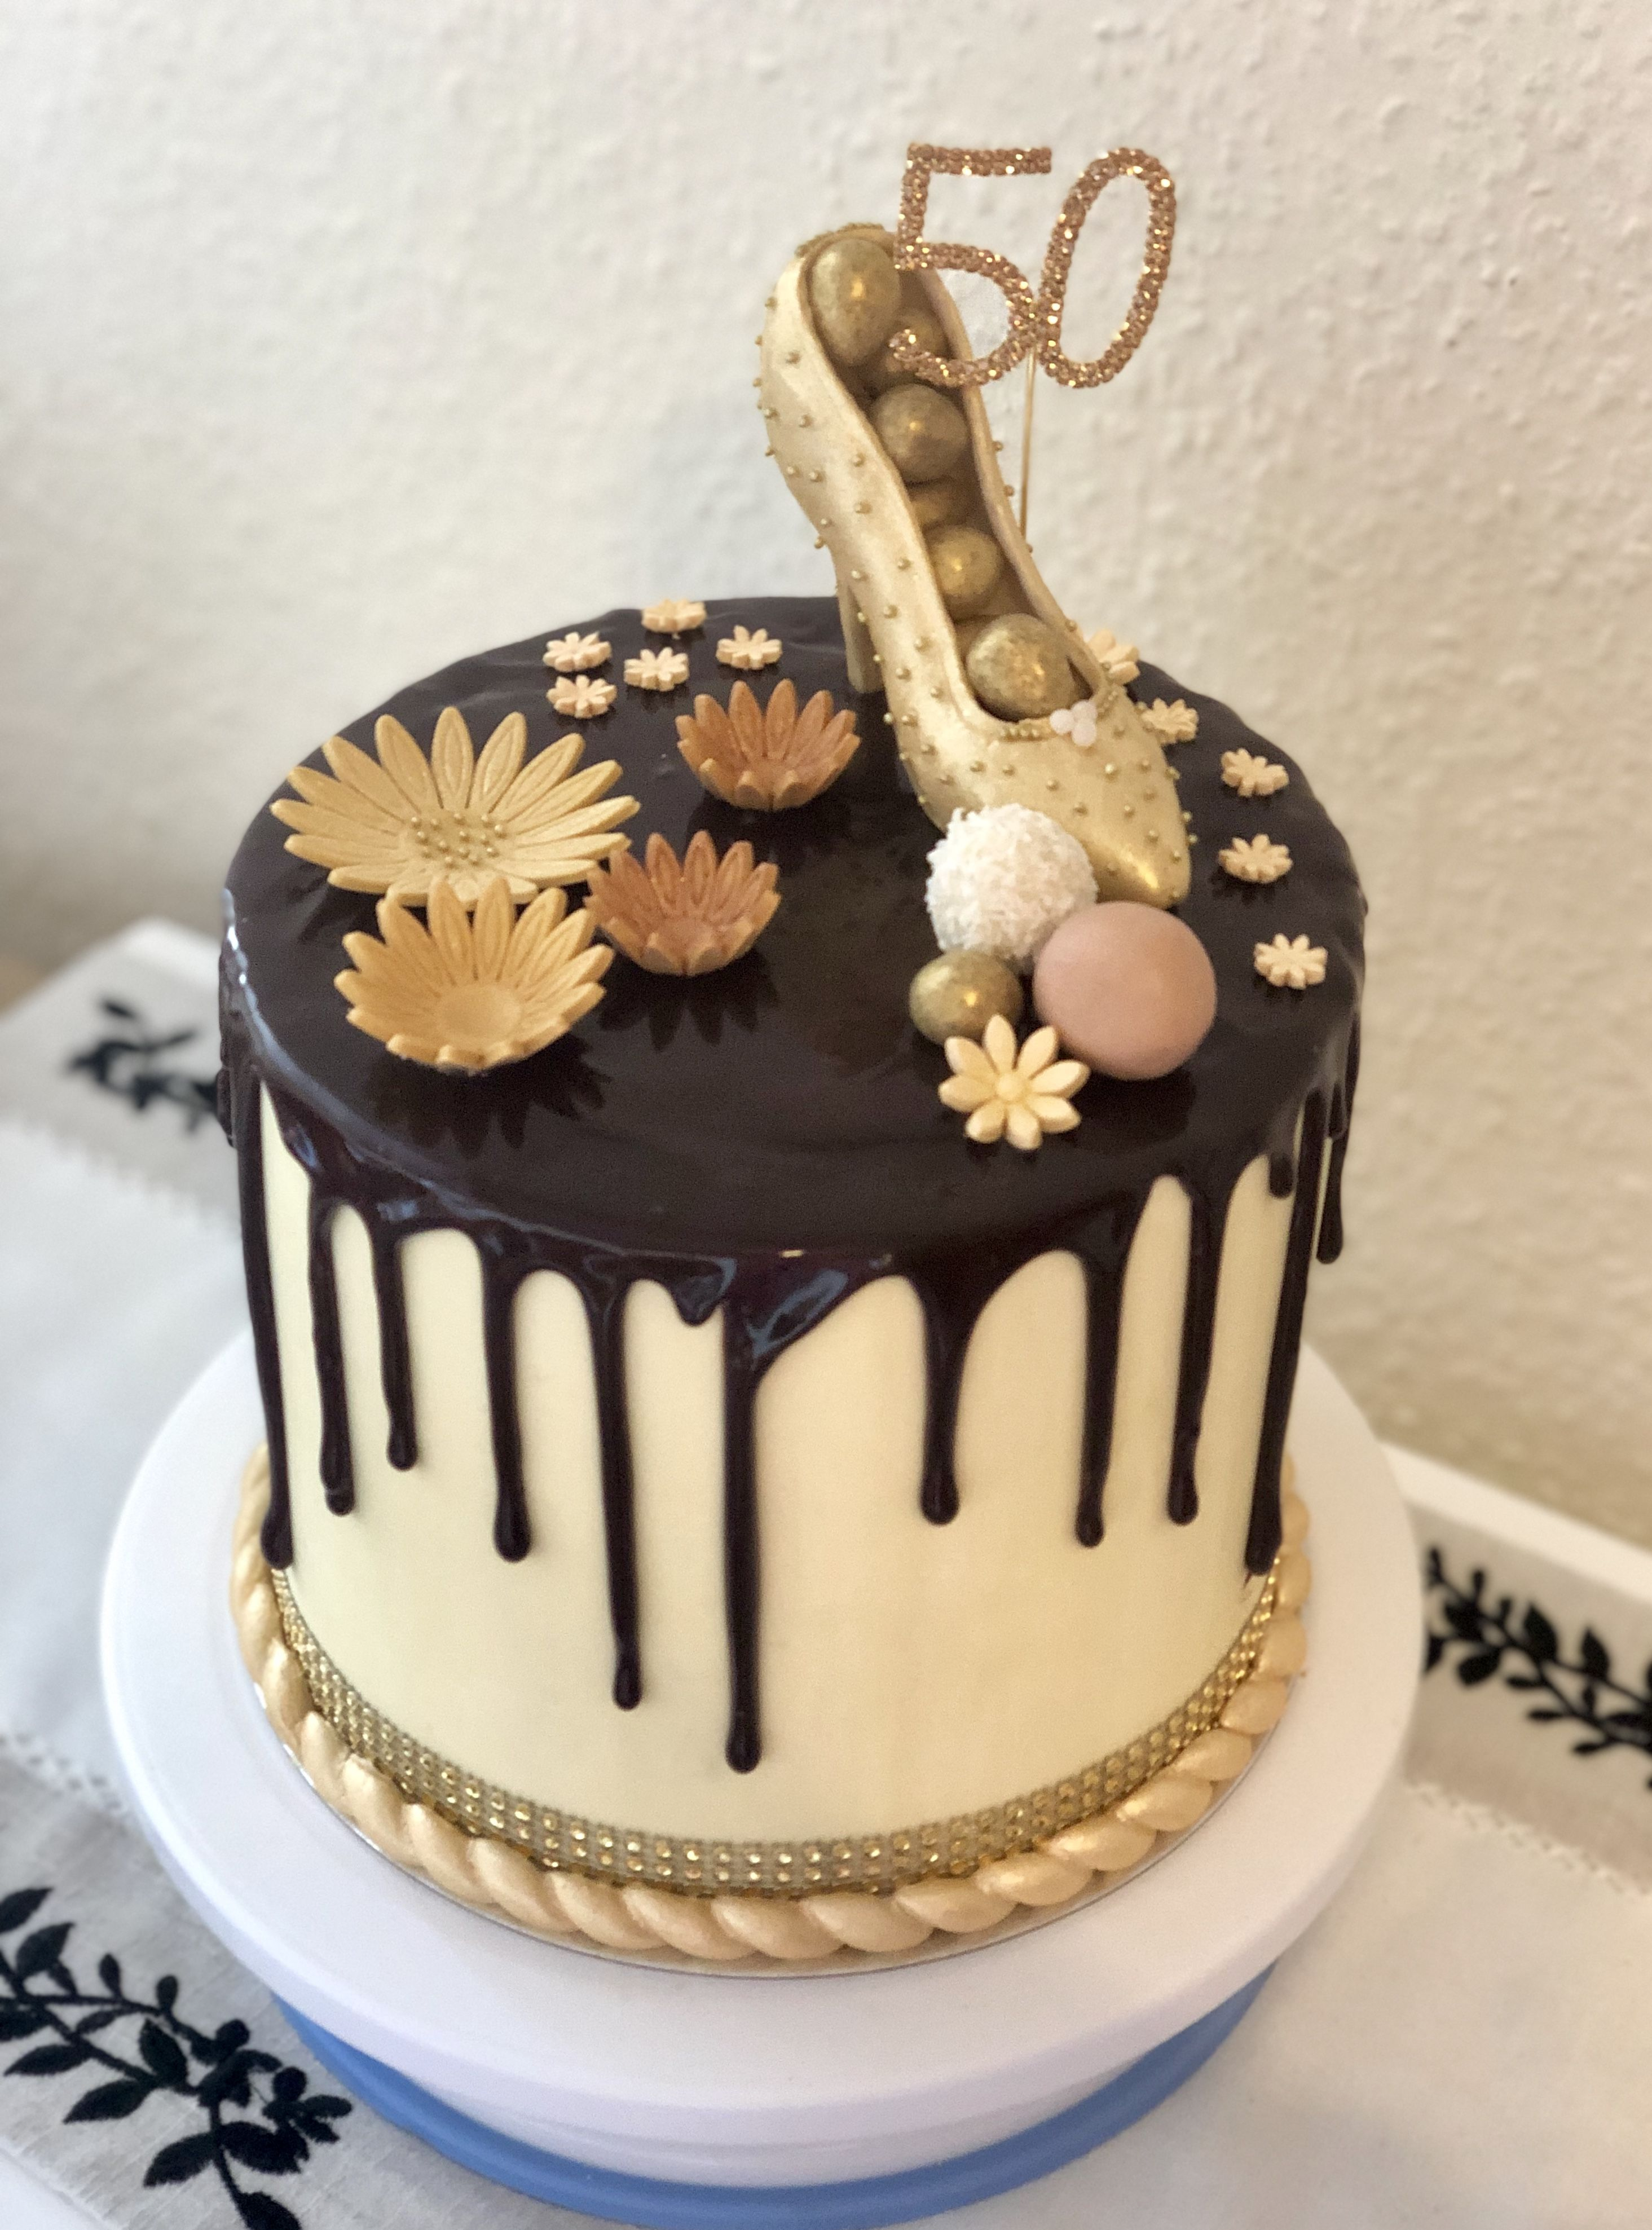 edible cake images store near me